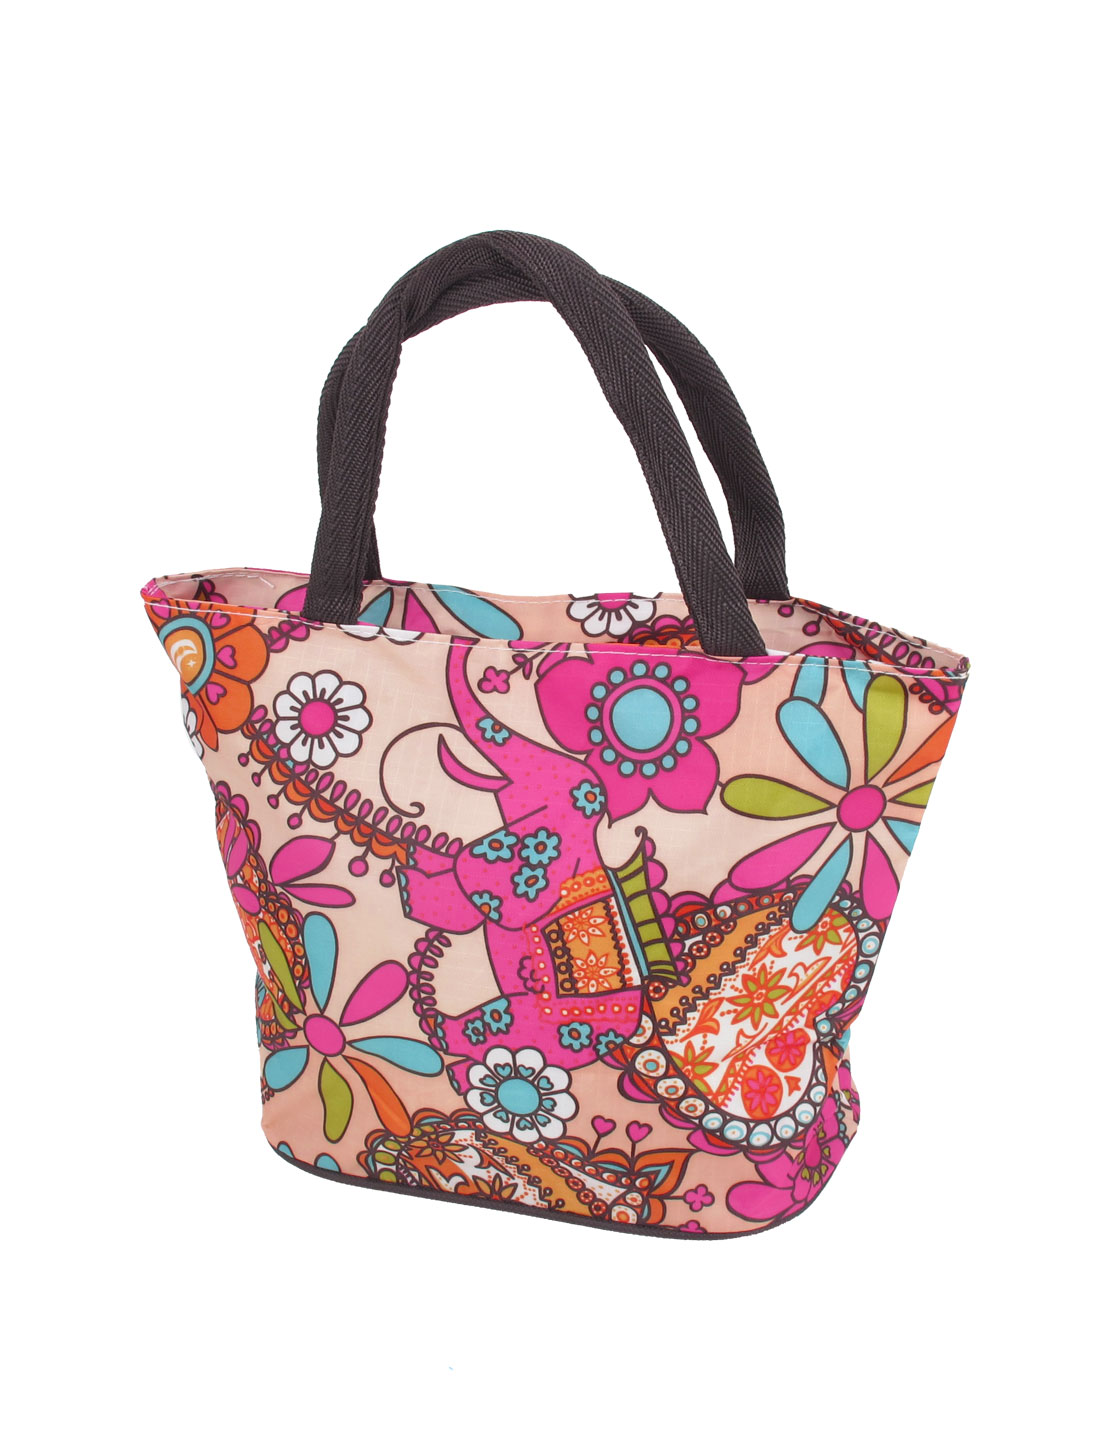 Ladies Elephant Flower Pattern Oxford Cloth Zip up Tote Bag Handbag Colorful